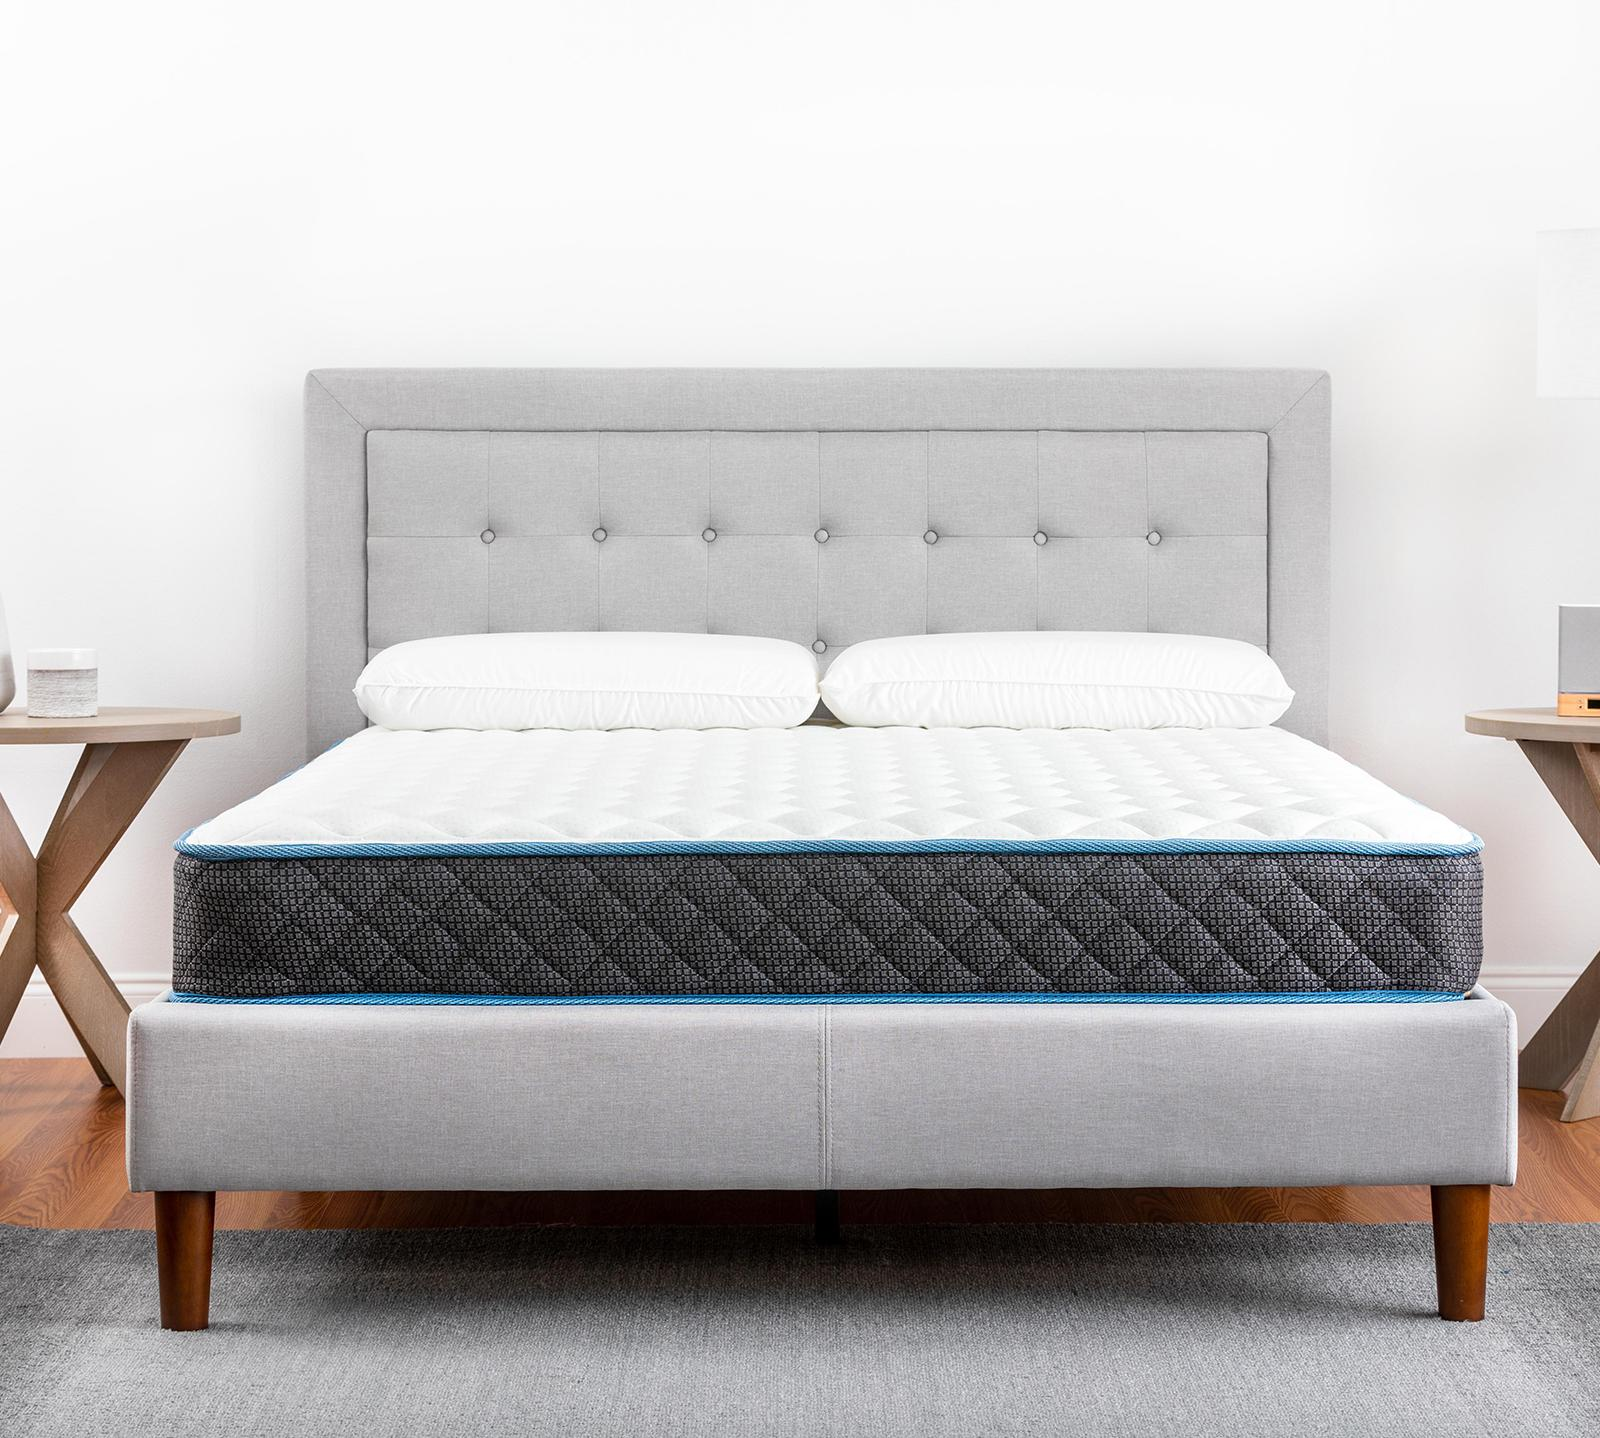 Basic 8.5 Inch Firm Innerspring Mattress